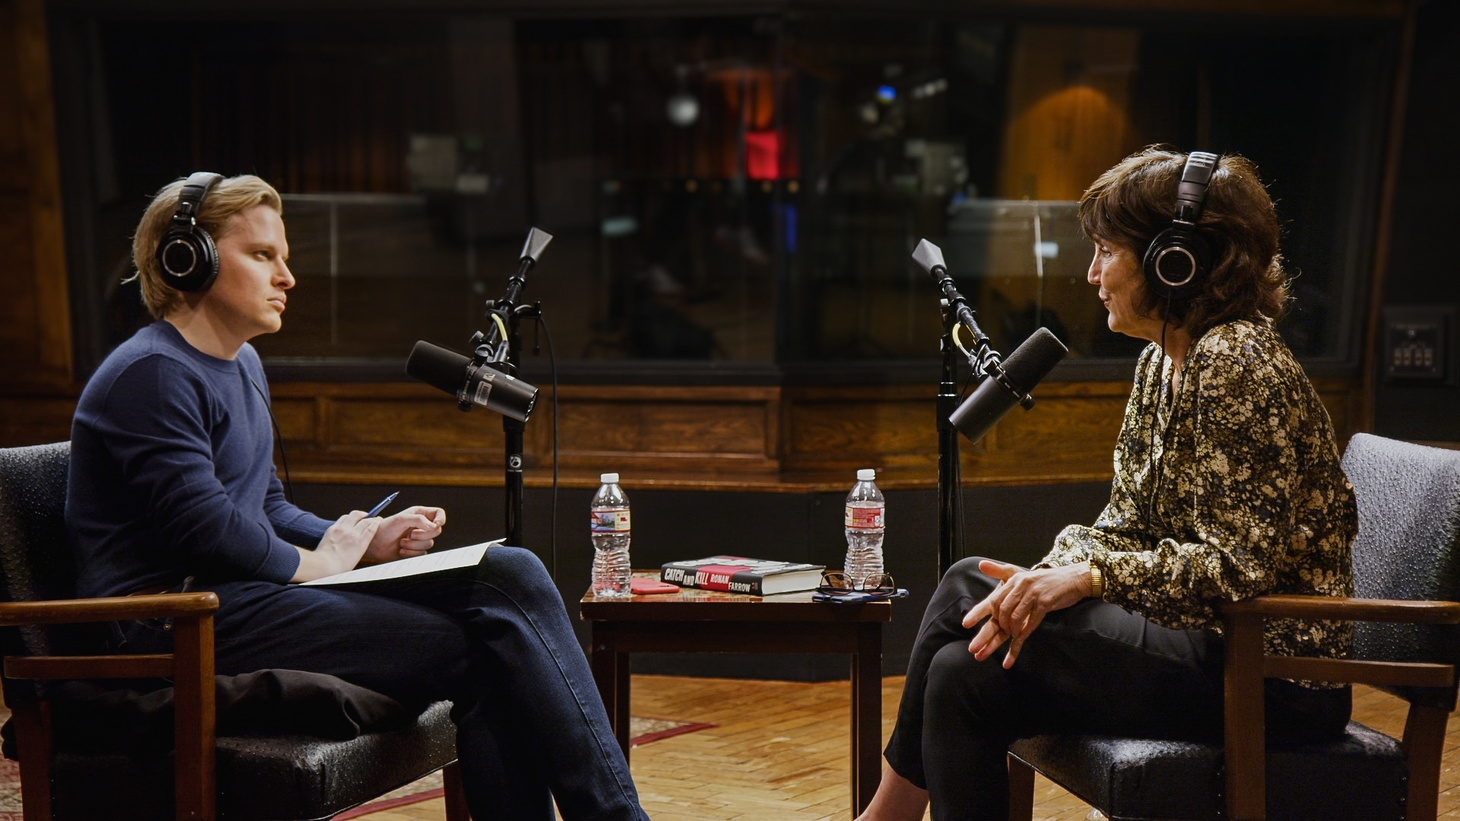 """Ronan Farrow interviews Kim Masters for his """"Catch and Kill"""" podcast. The documentary series """"Catch and Kill: The Podcast Tapes"""" is now on HBO Max."""